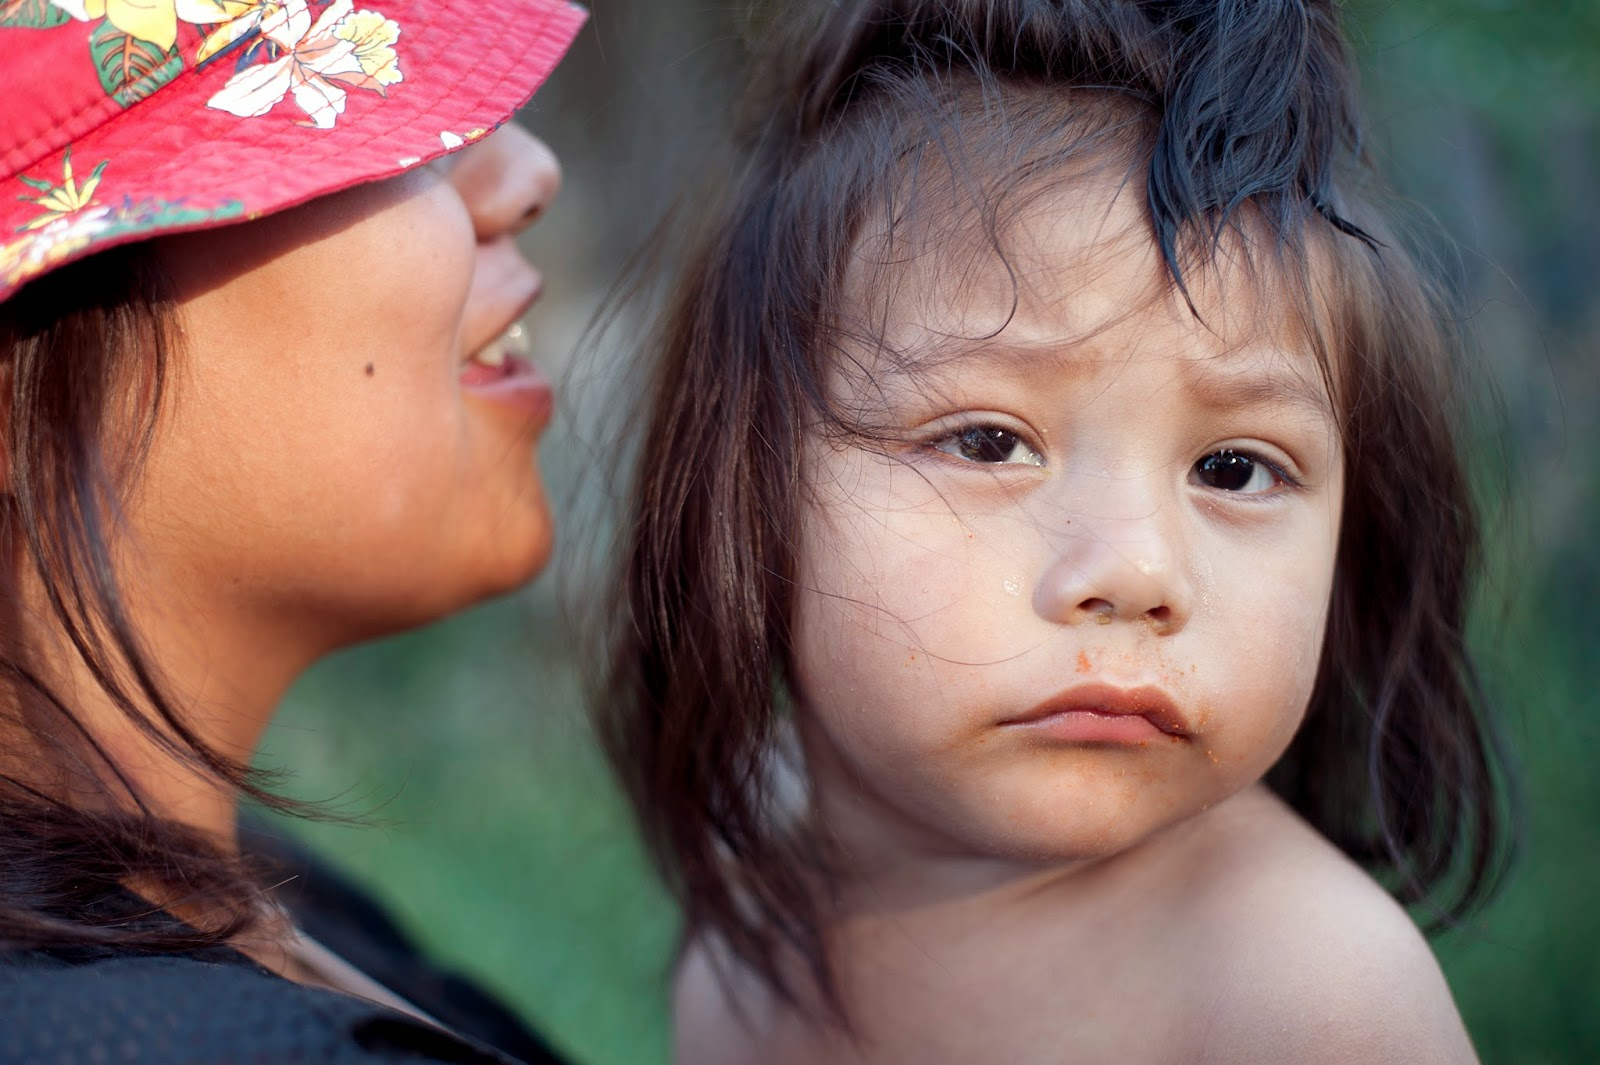 Lodge Grass, Montana.Violita Fouler (Gun Shows) holds her younger brother. Violita and all 7 of her family members share a two bedroom trailer. This type of housing situation is common and in the 2000 Census the Reservation had a near 30% poverty rate.